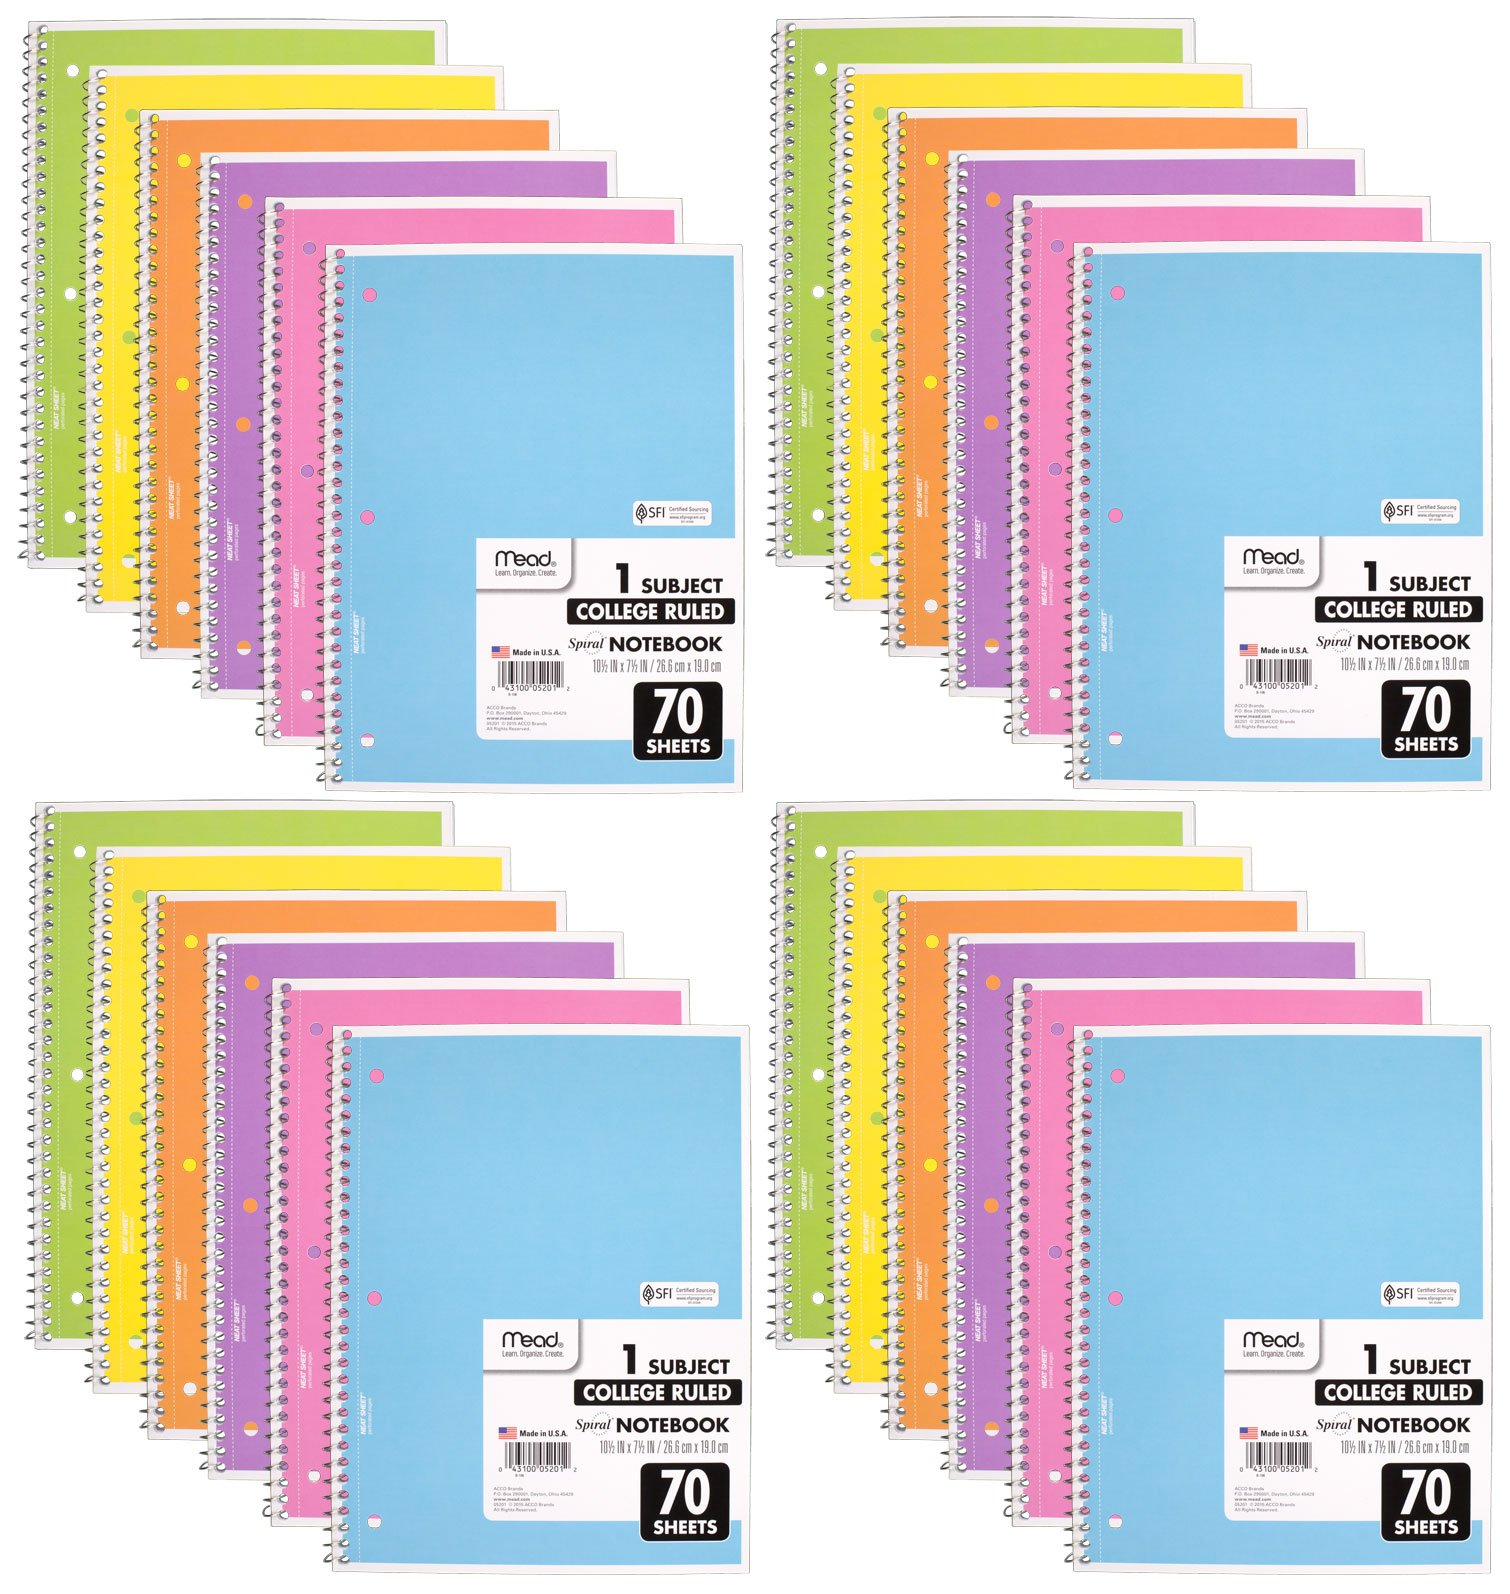 Mead Spiral Notebook, 24 Pack of 1-Subject College Ruled Spiral Bound Notebooks, Pastel Color Cute school Notebooks 70 Pages by Mead